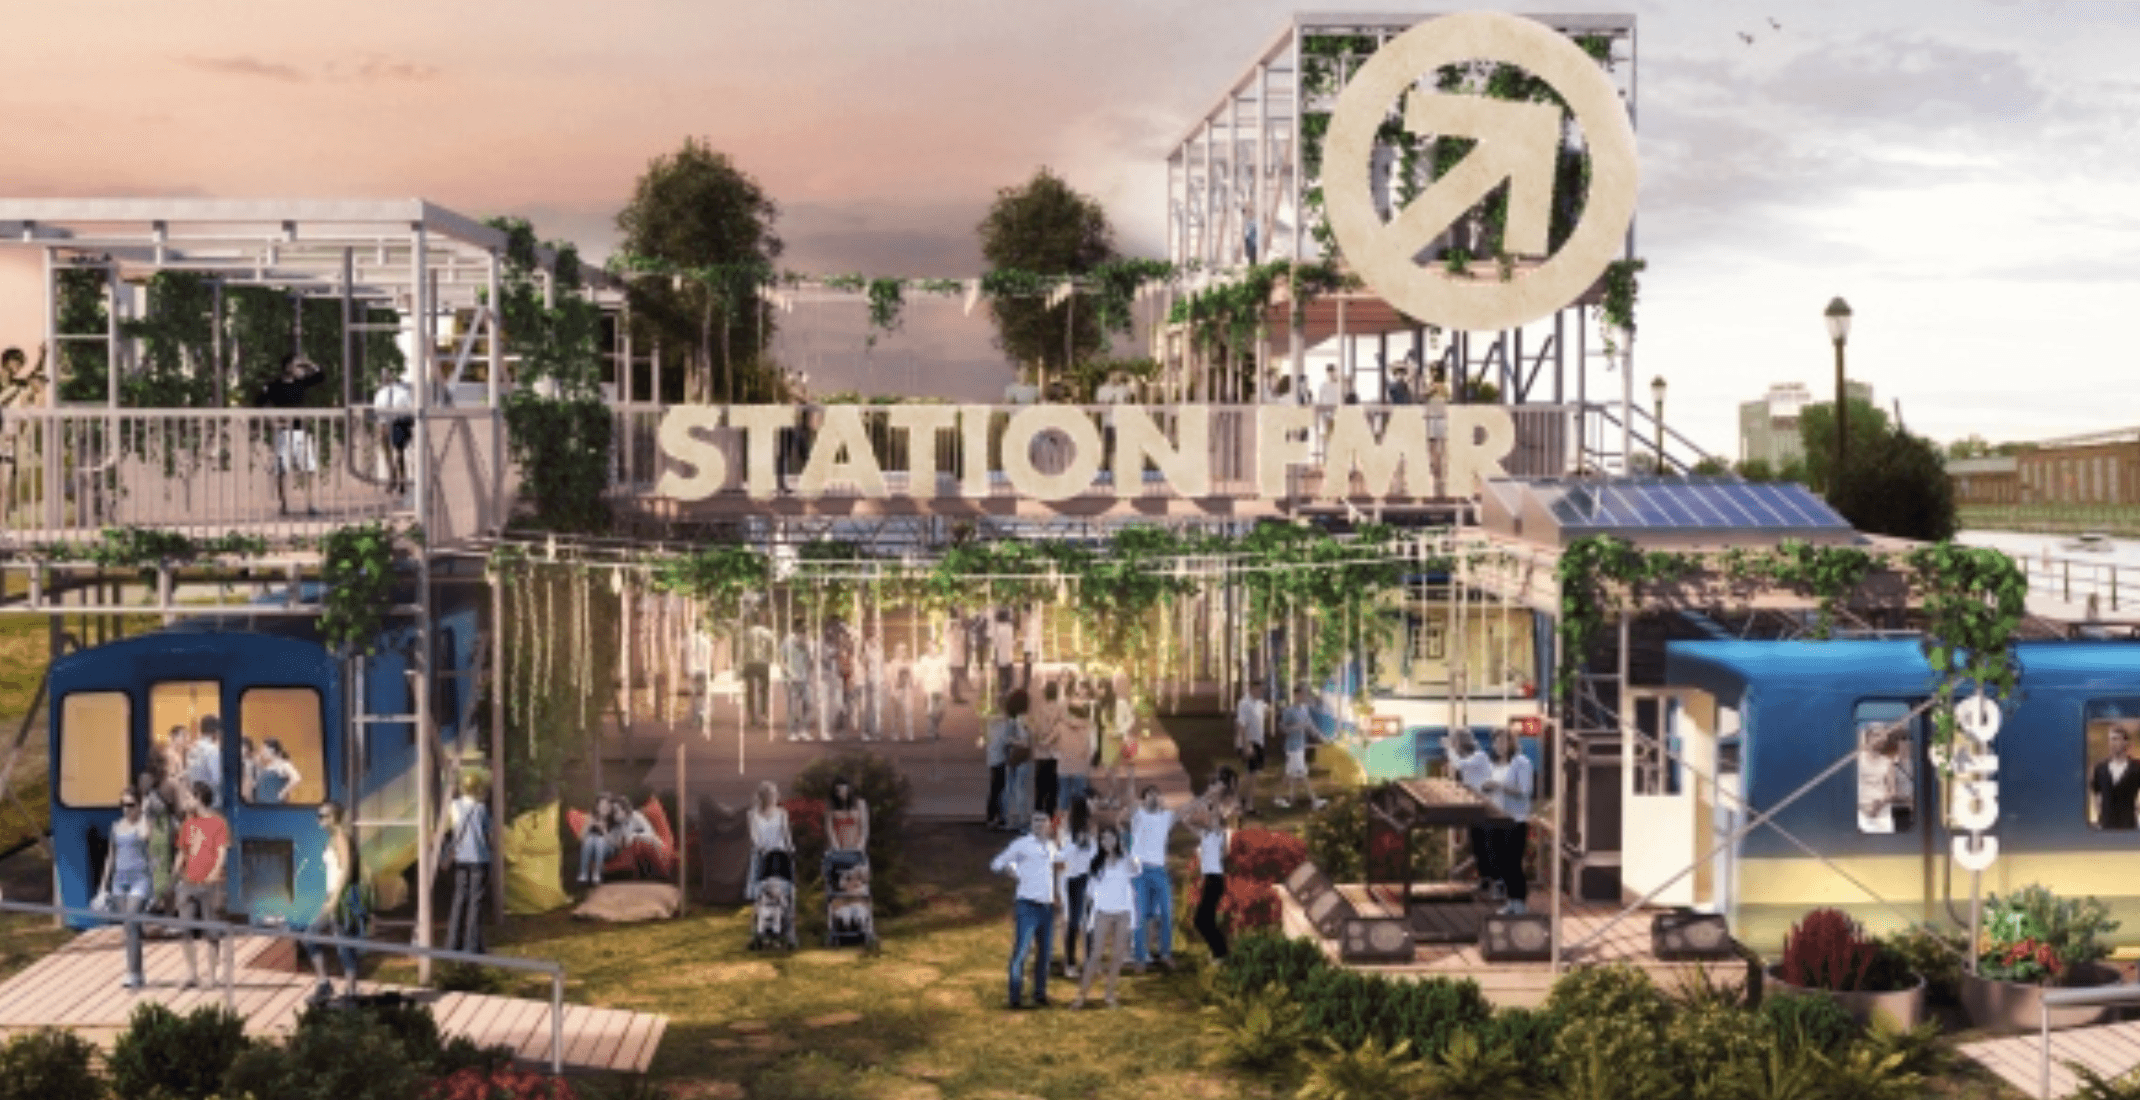 Montreal is getting a new park featuring old MR-63 Metro cars (PHOTOS)